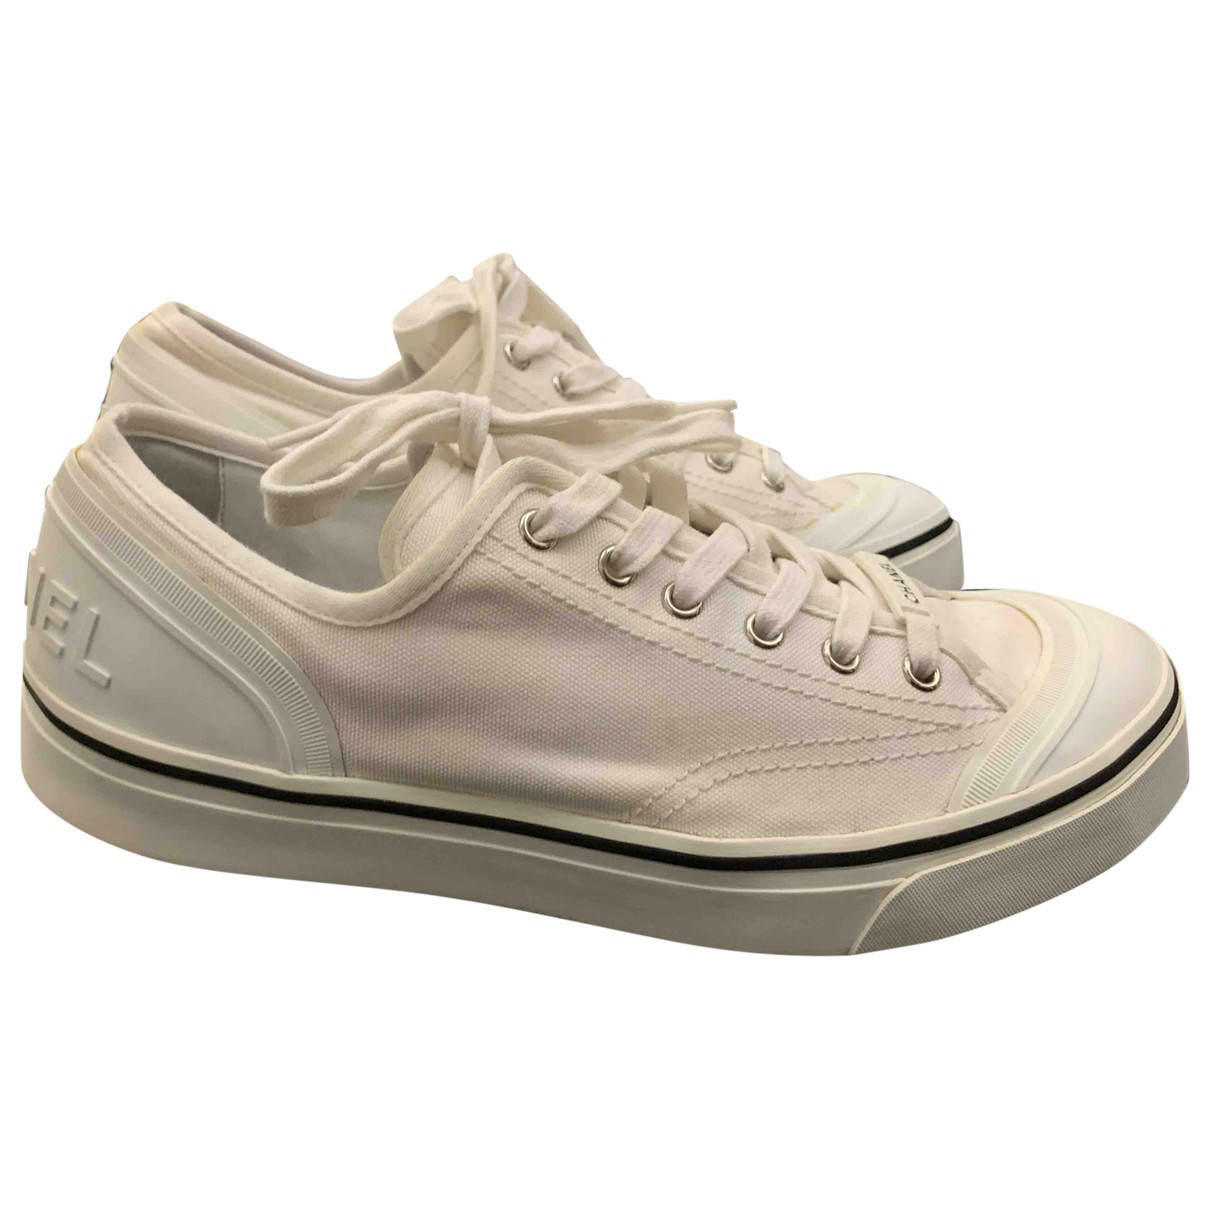 Chanel \N White Cloth Trainers for Women 41 EU